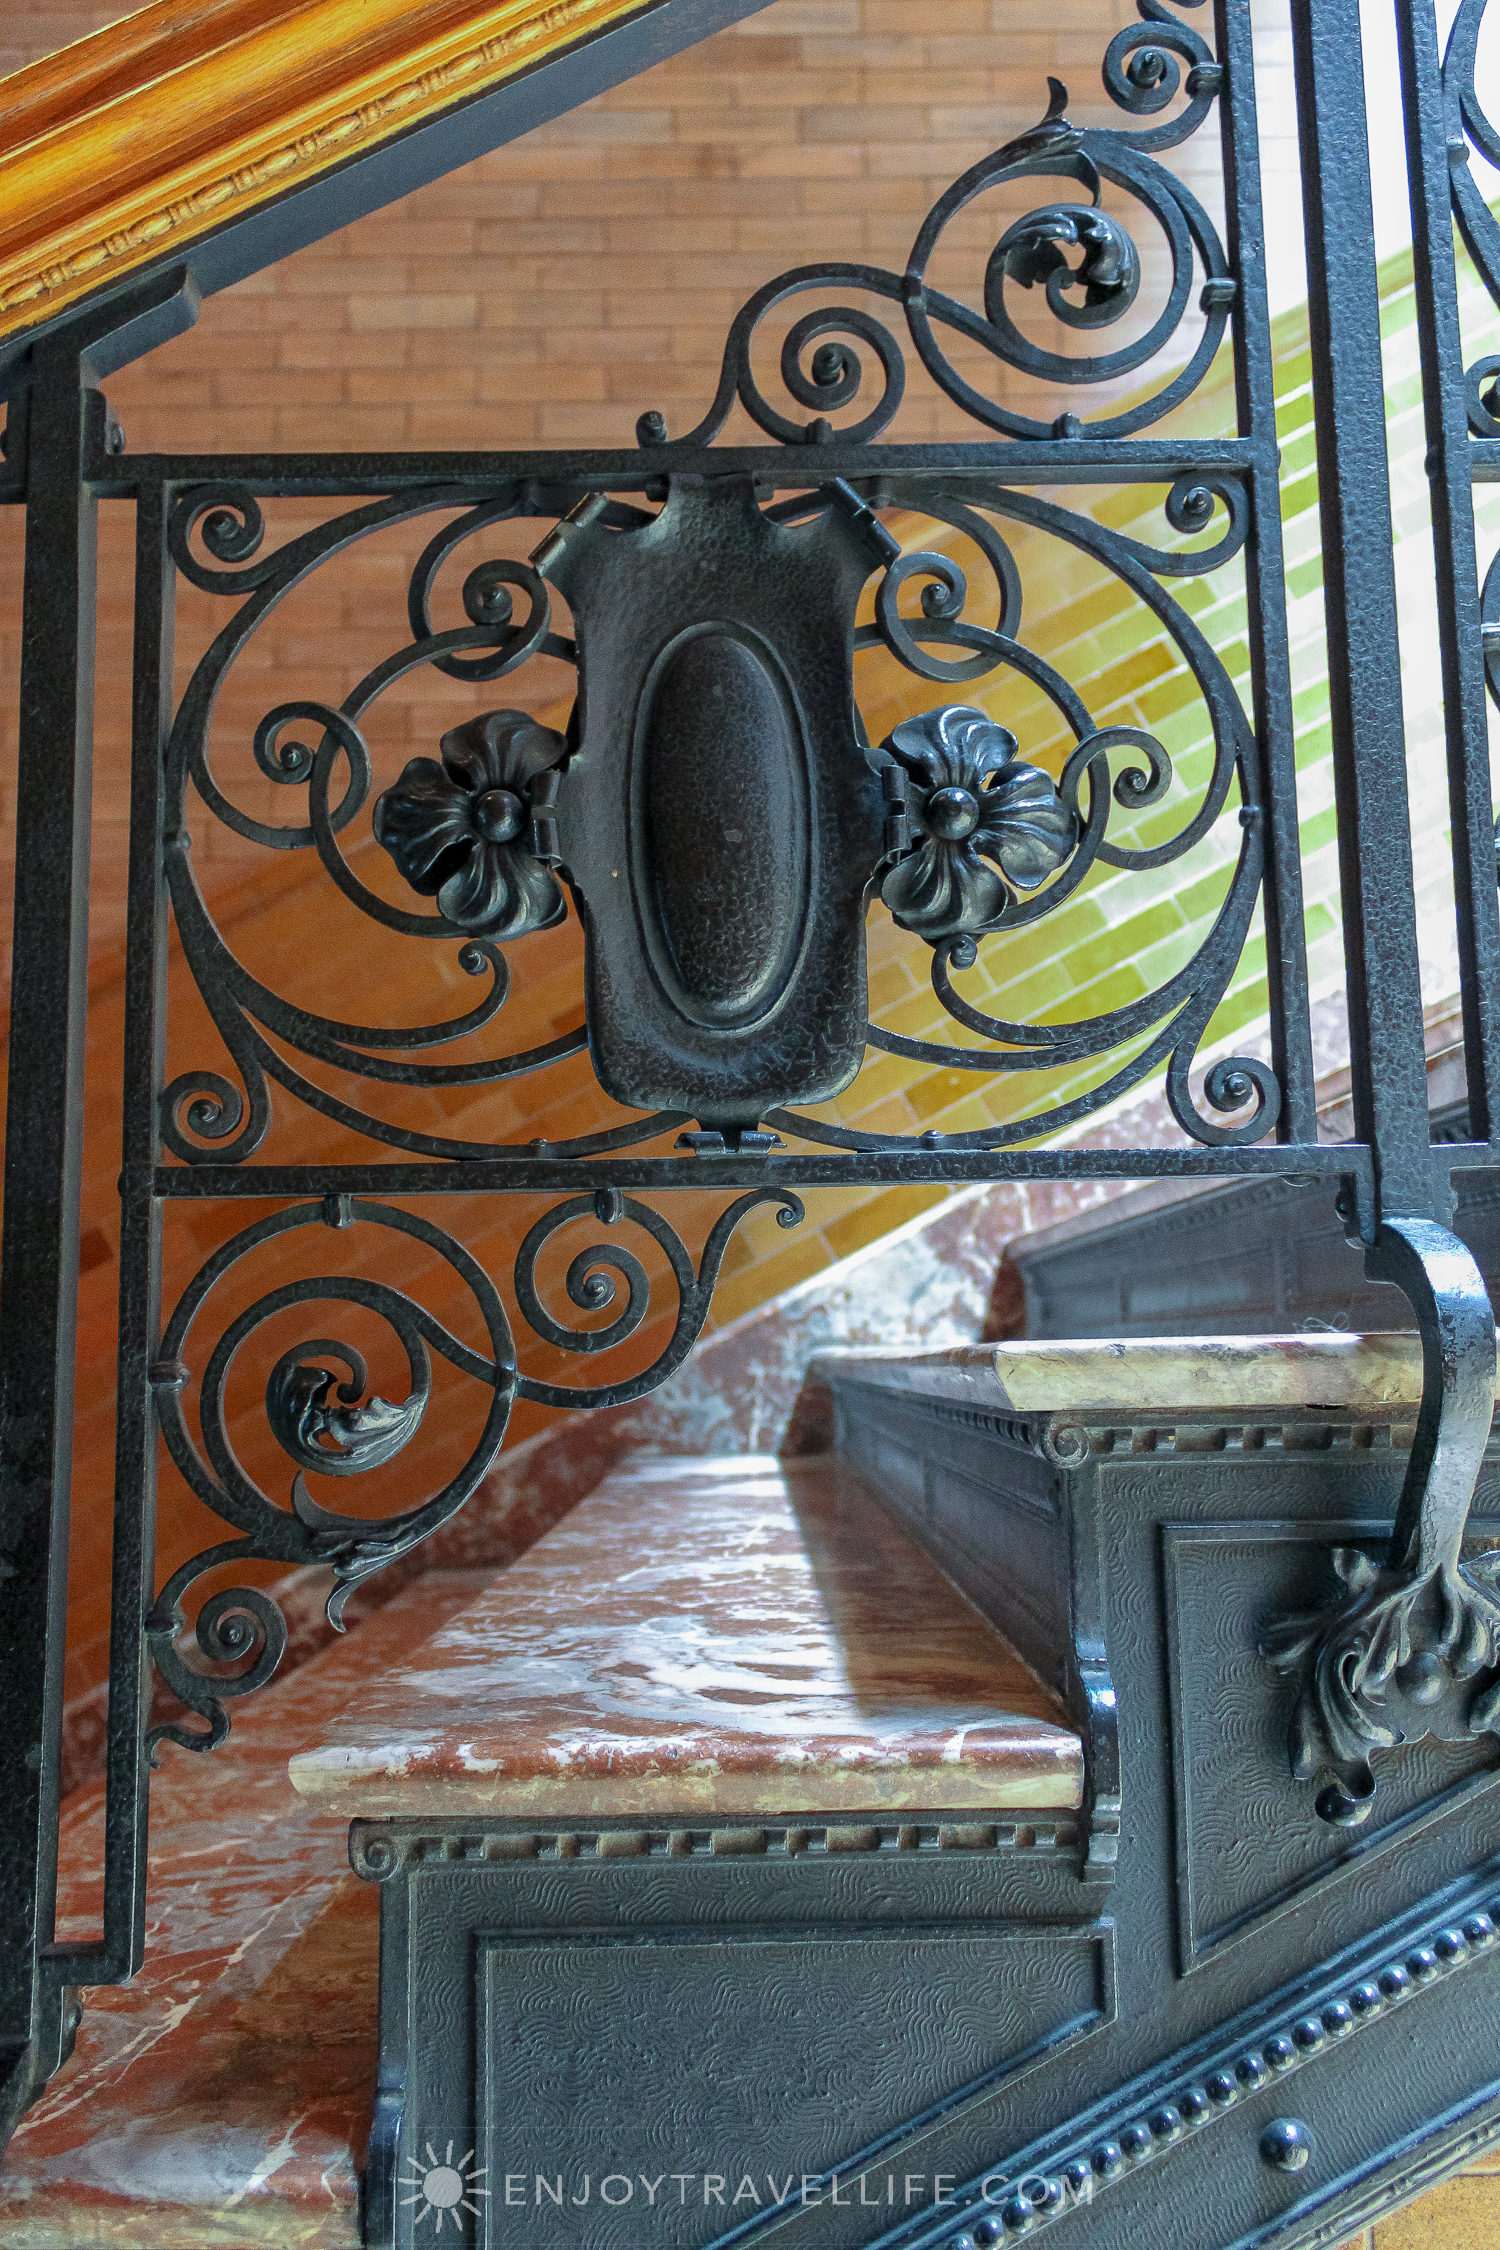 The Bradbury Building Los Angeles - Hollywood superstar and architectural landmark ironwork on marble stairs